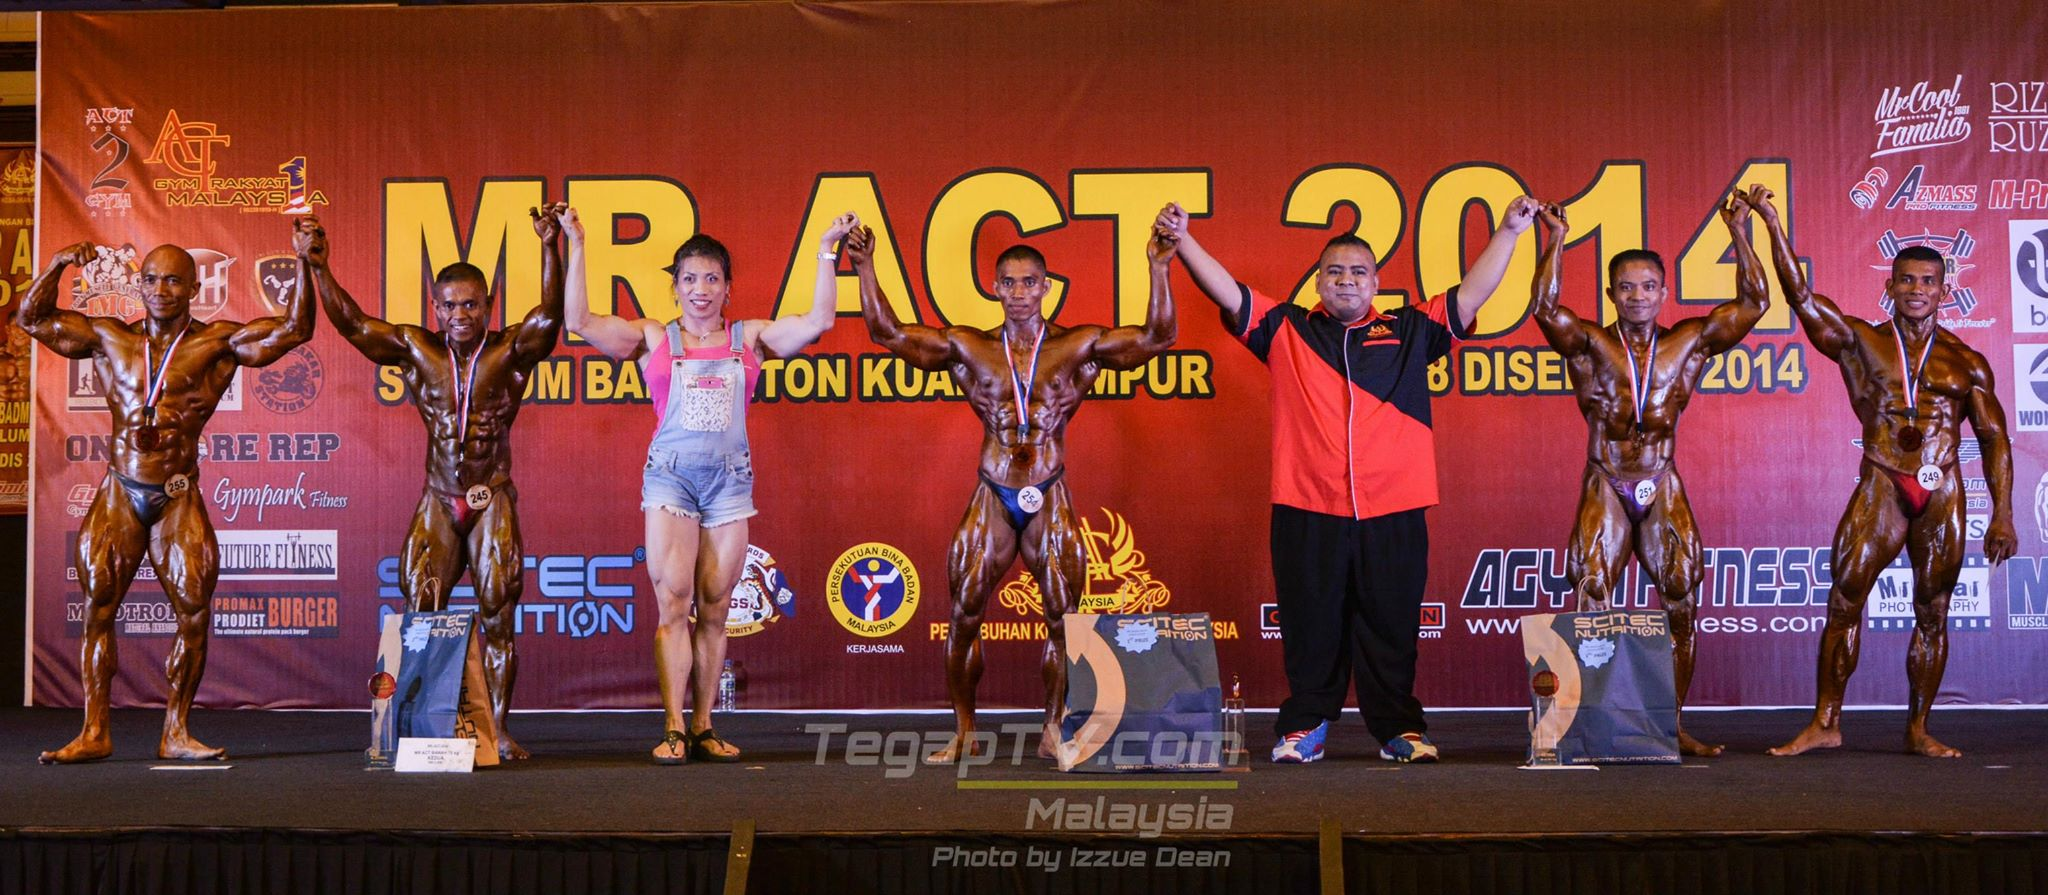 Winners Bodybuilding Below 70kg